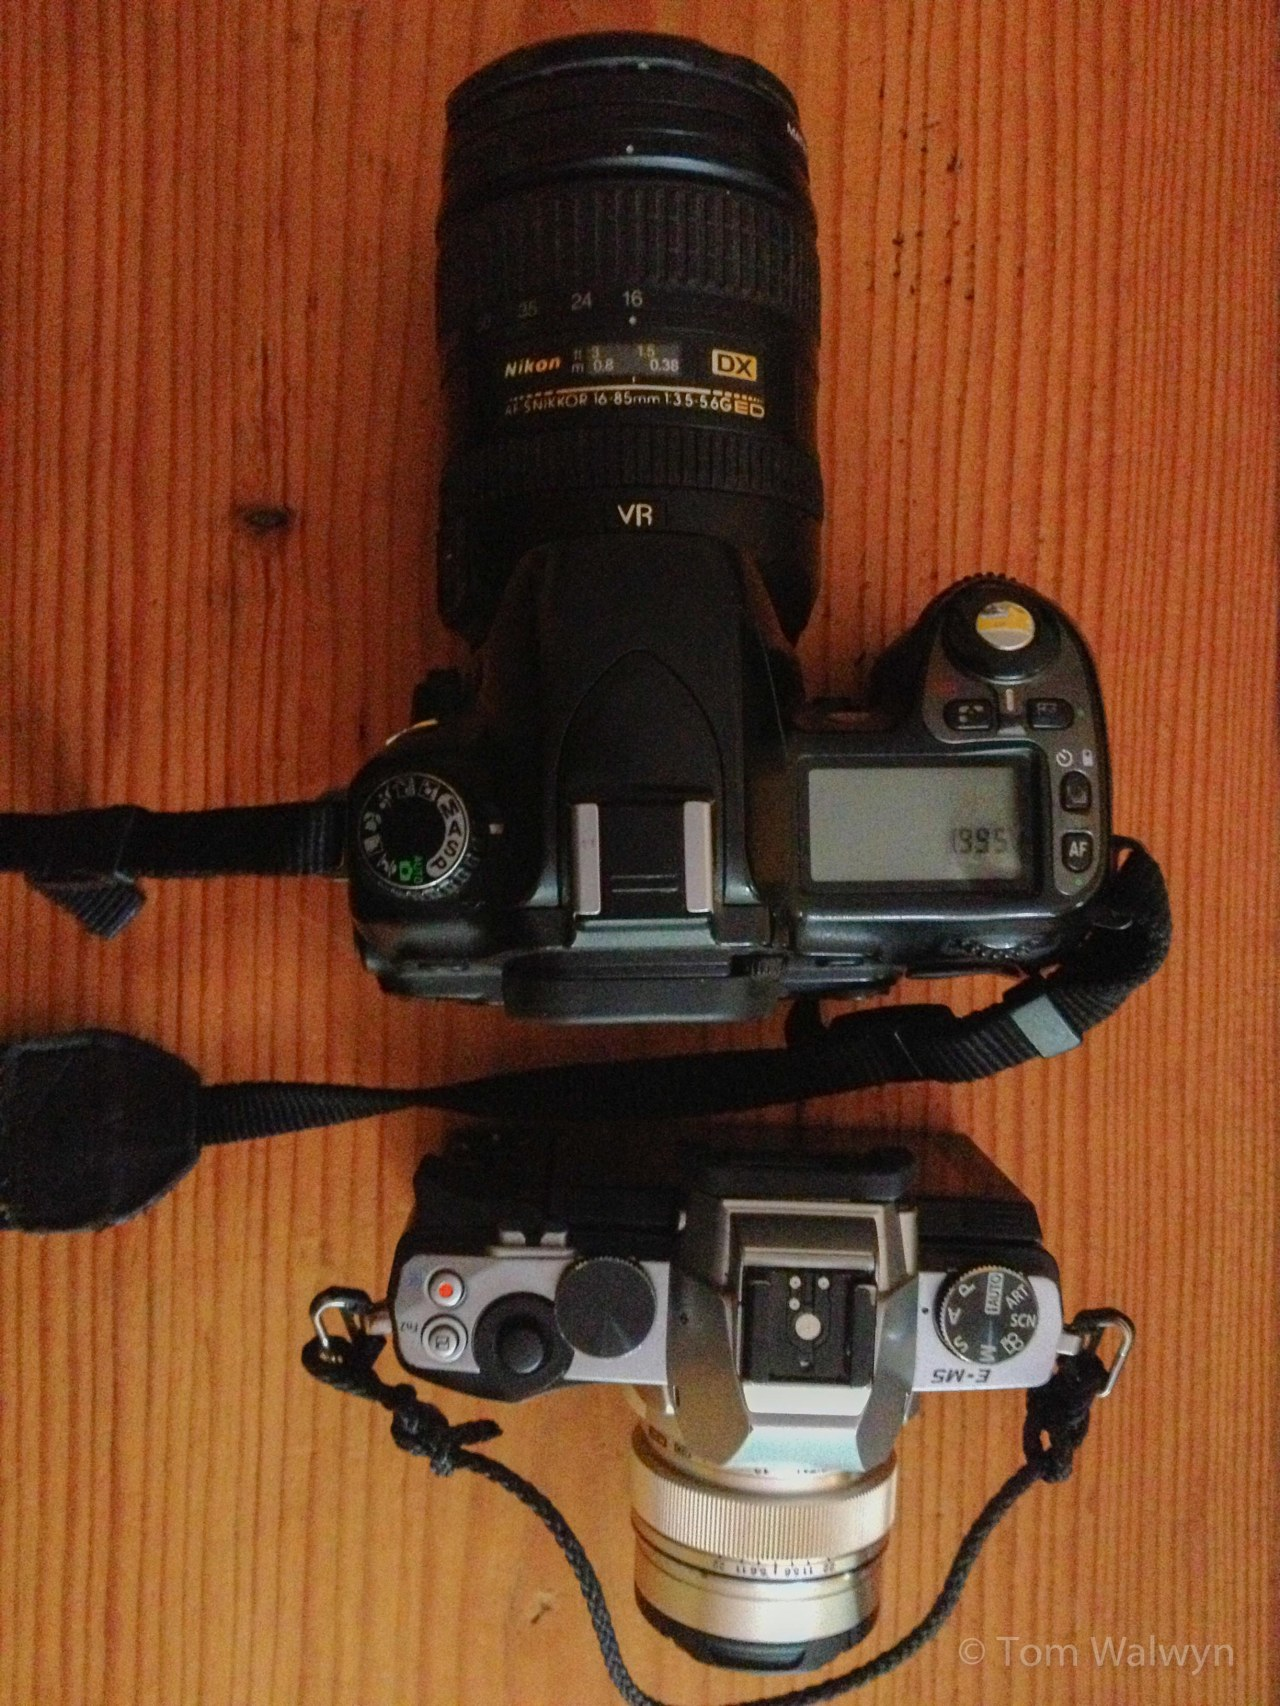 David and Goliath - the Nikon D80/16-85mm vs the Olympus OM-D EM-5/12mm